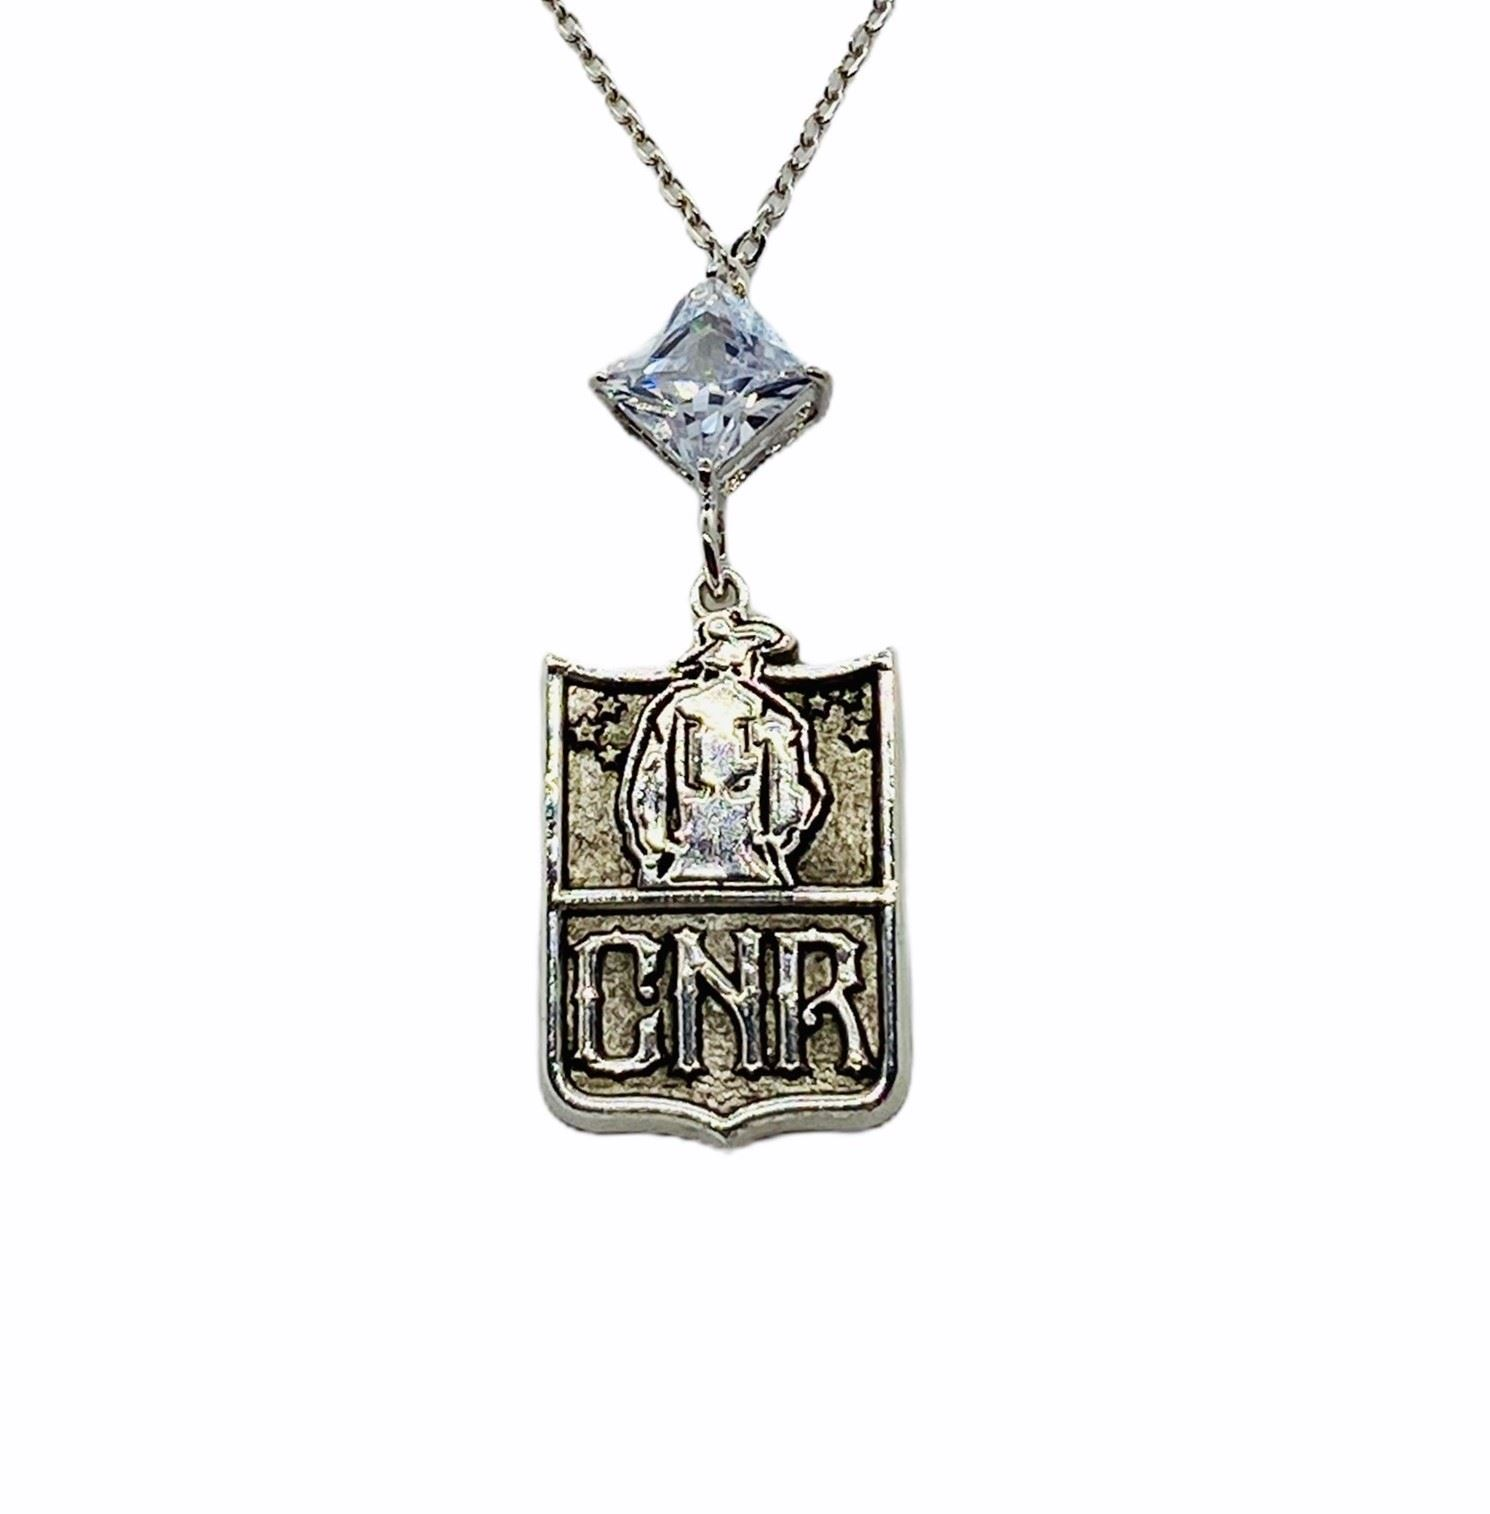 CNR Necklace by Montana Silversmiths